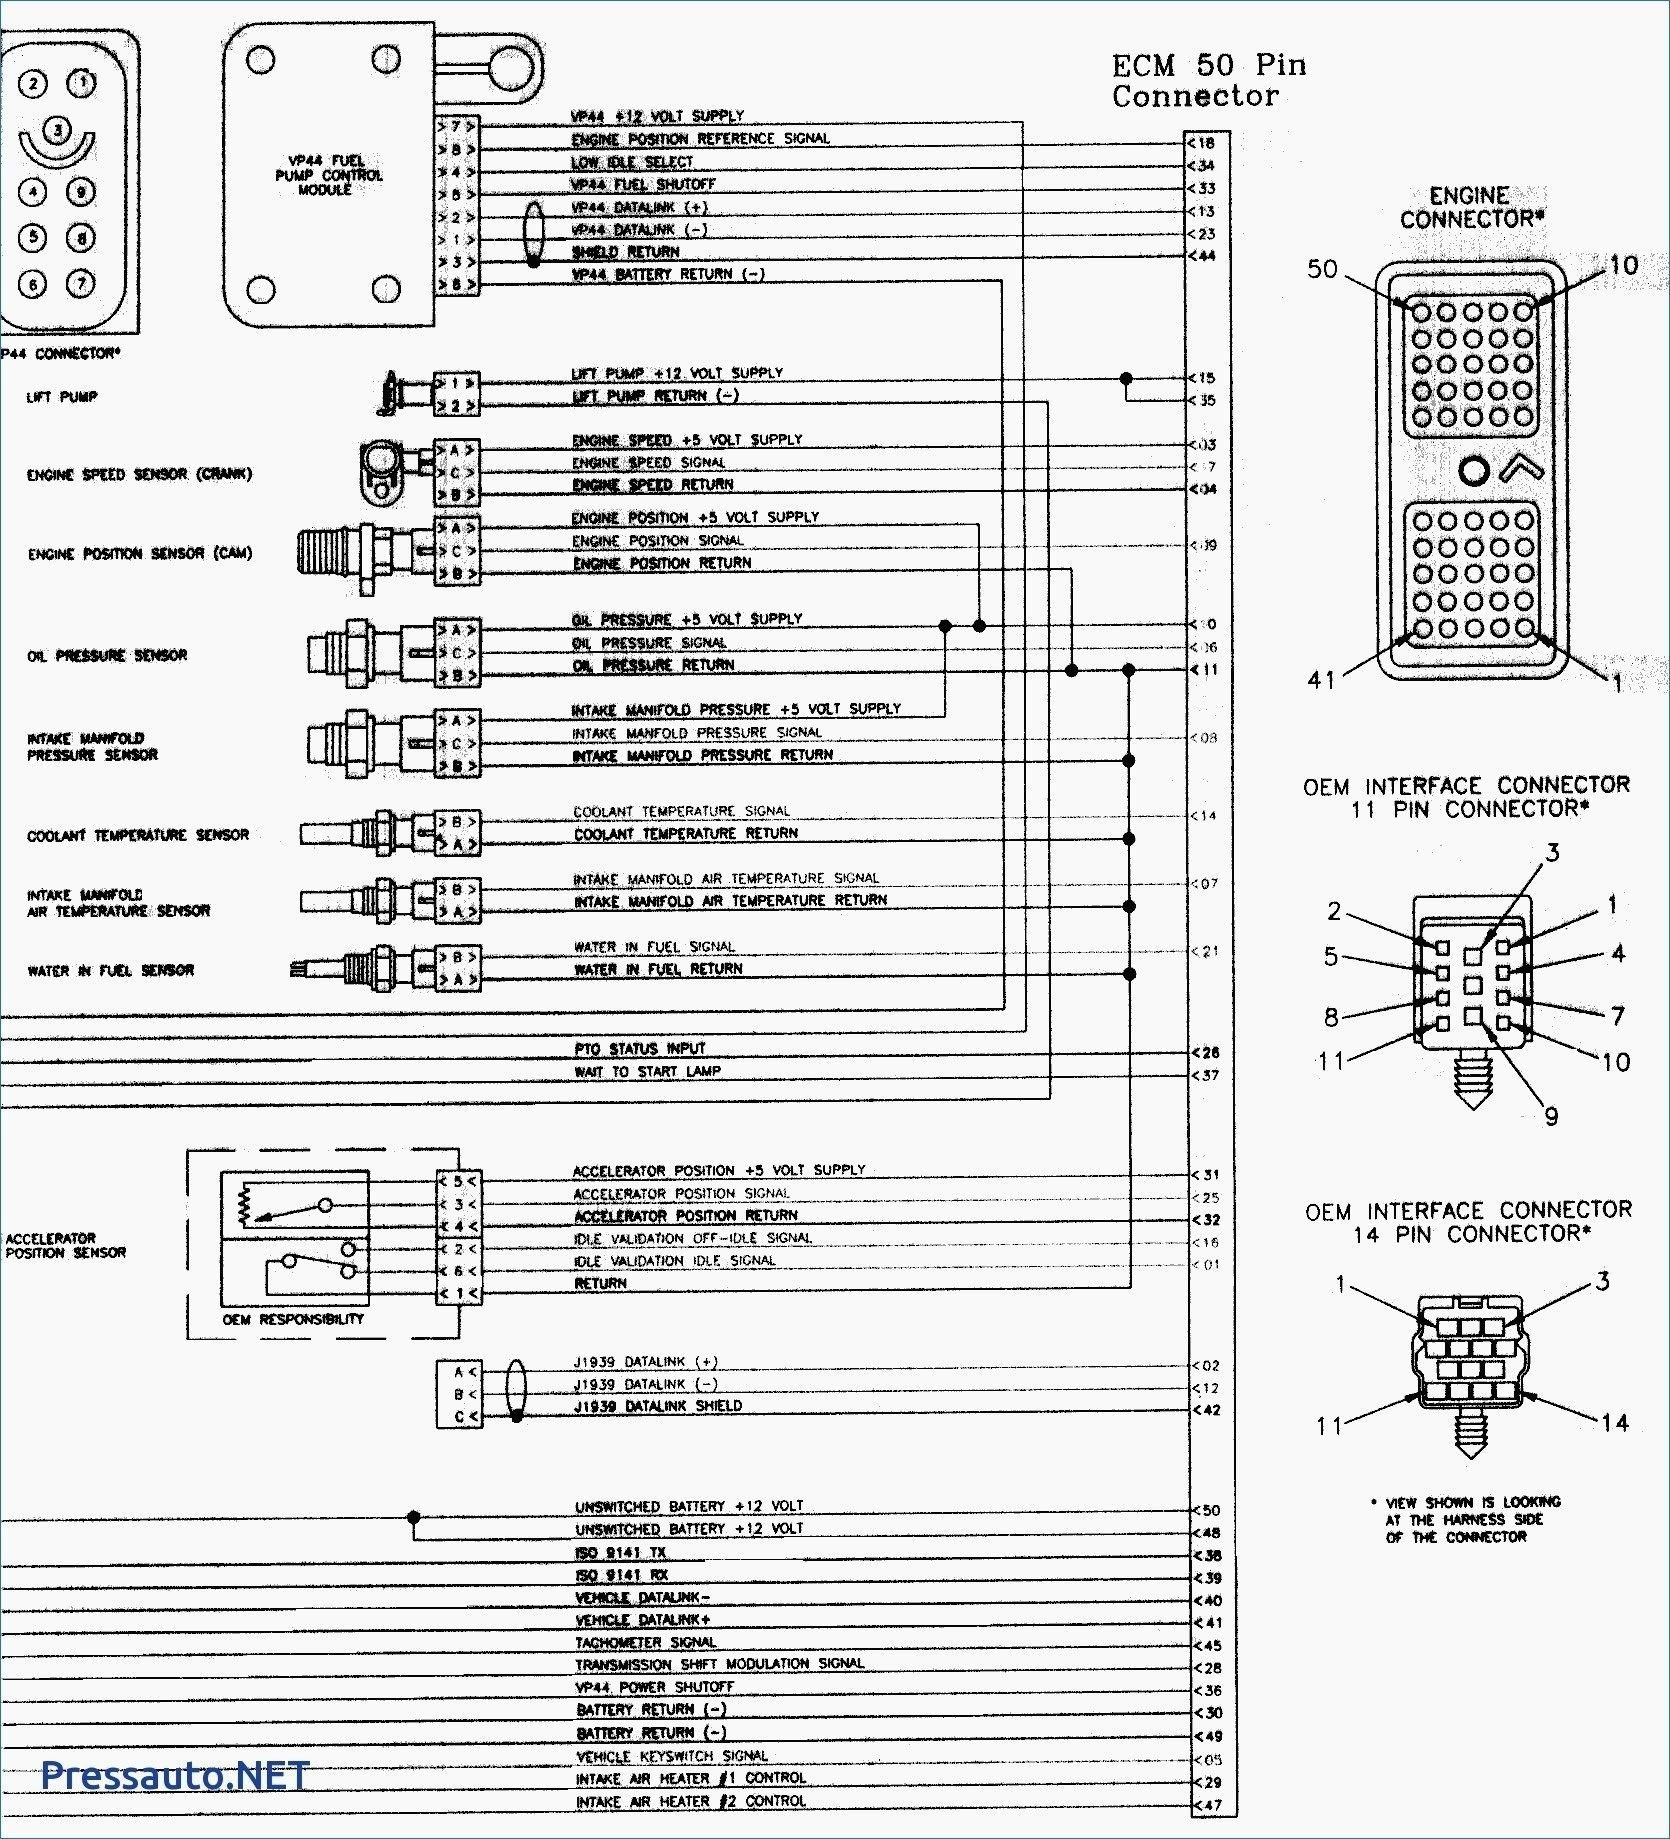 New Wiring Diagram For 2014 Dodge Ram 1500  Diagram